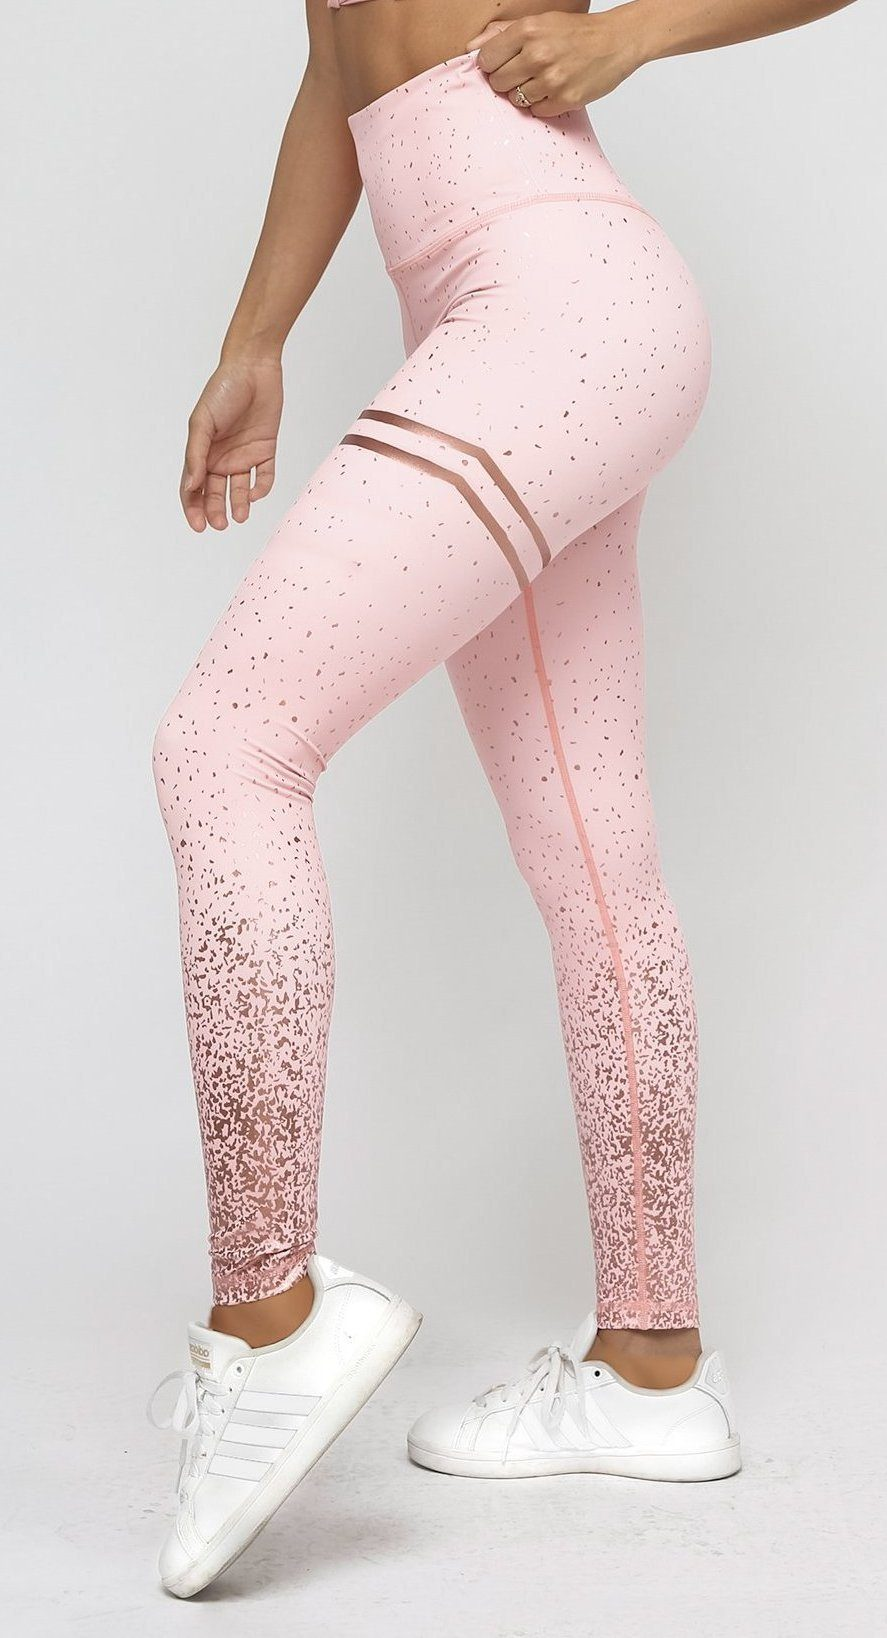 c7518acaf19014 Sparkle Leggings - Pink / Rose Gold - Neo Activewear